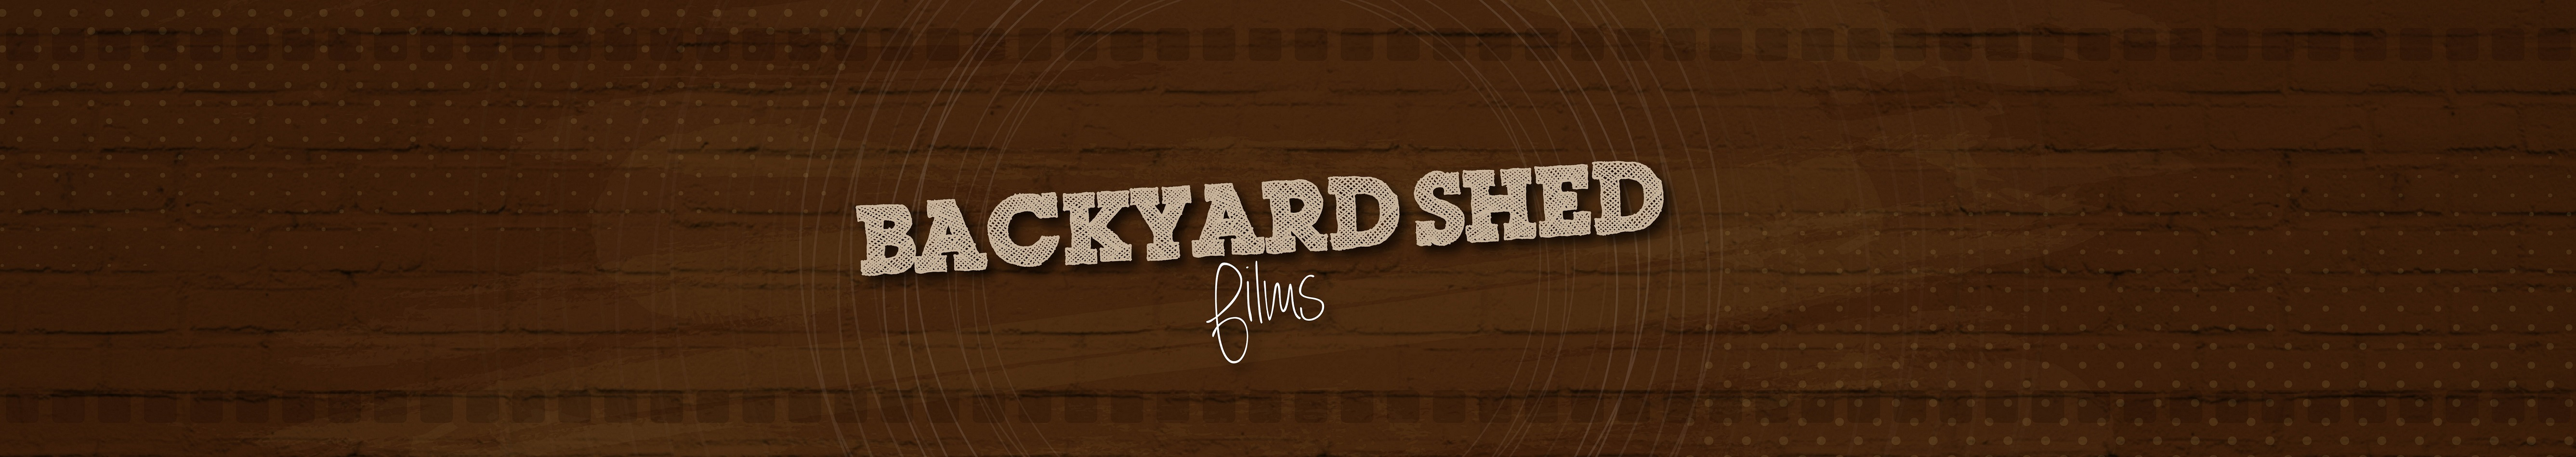 Blog | Backyard Shed Films | Video Production, Music Videos, Commercials, and Post-production